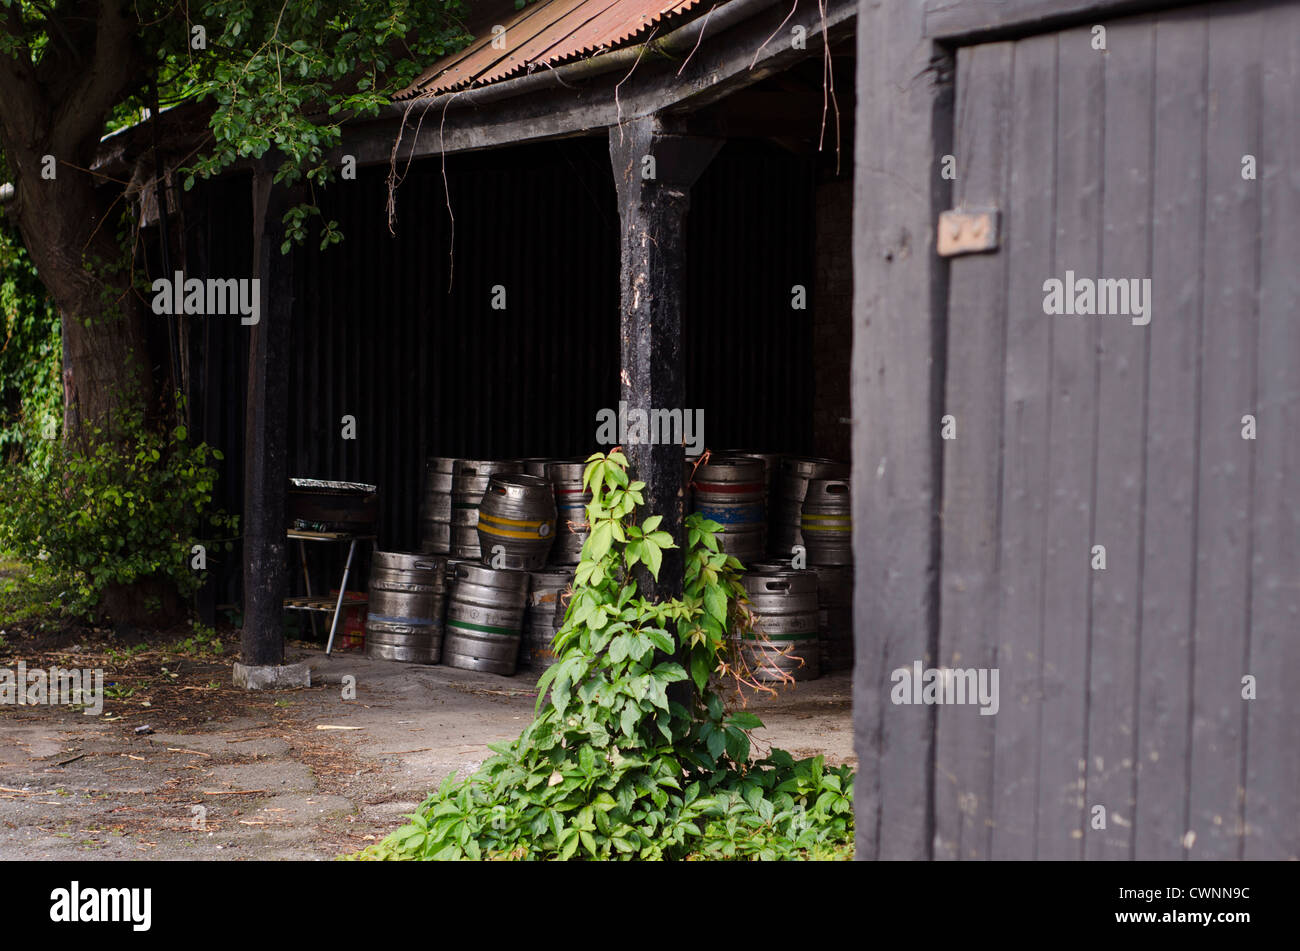 A cache of metal beer barrels in a pub porch storage space overgrown with climbing plants. - Stock Image